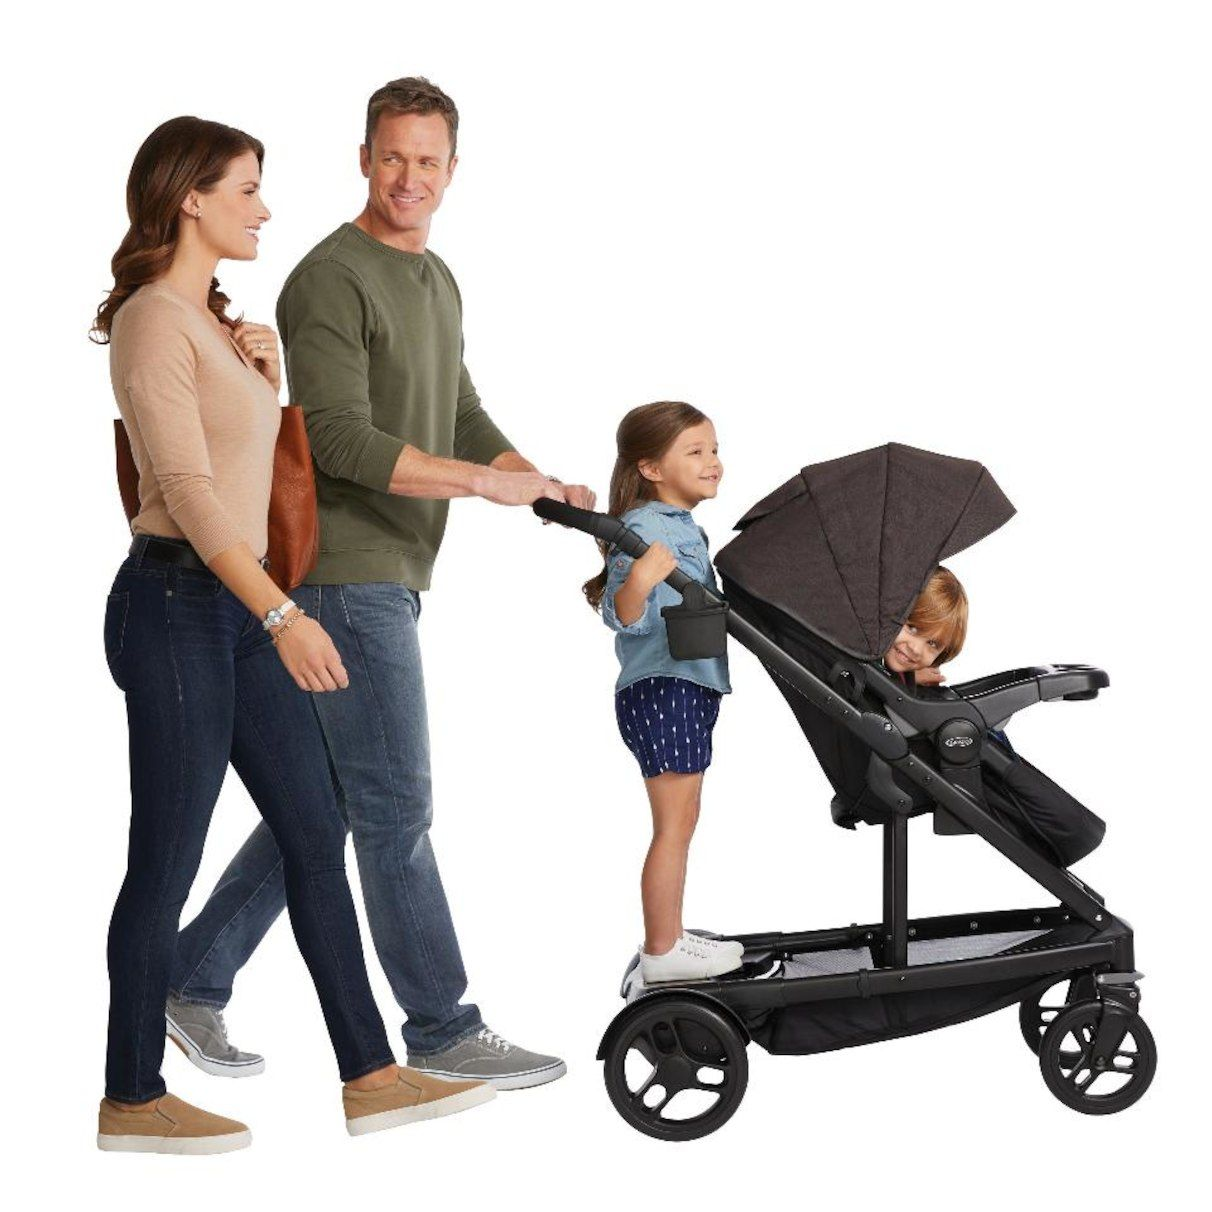 Uno2duo Stroller Graco Uno2duo Travel System Ace Single Stroller Travel